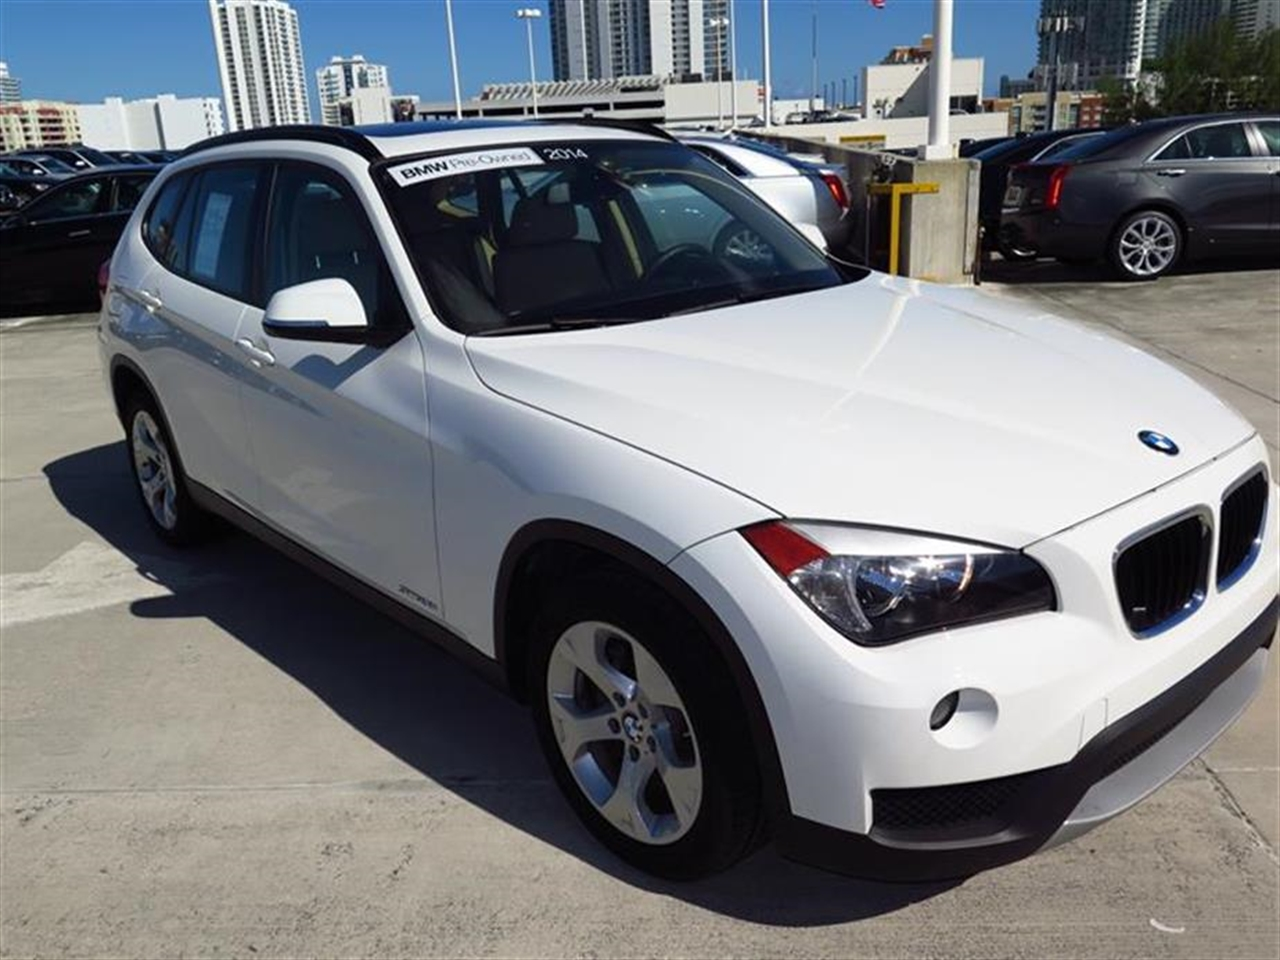 2014 BMW X1 RWD 4dr sDrive28i 10155 miles 2 Seatback Storage Pockets 3 12V DC Power Outlets LEAT